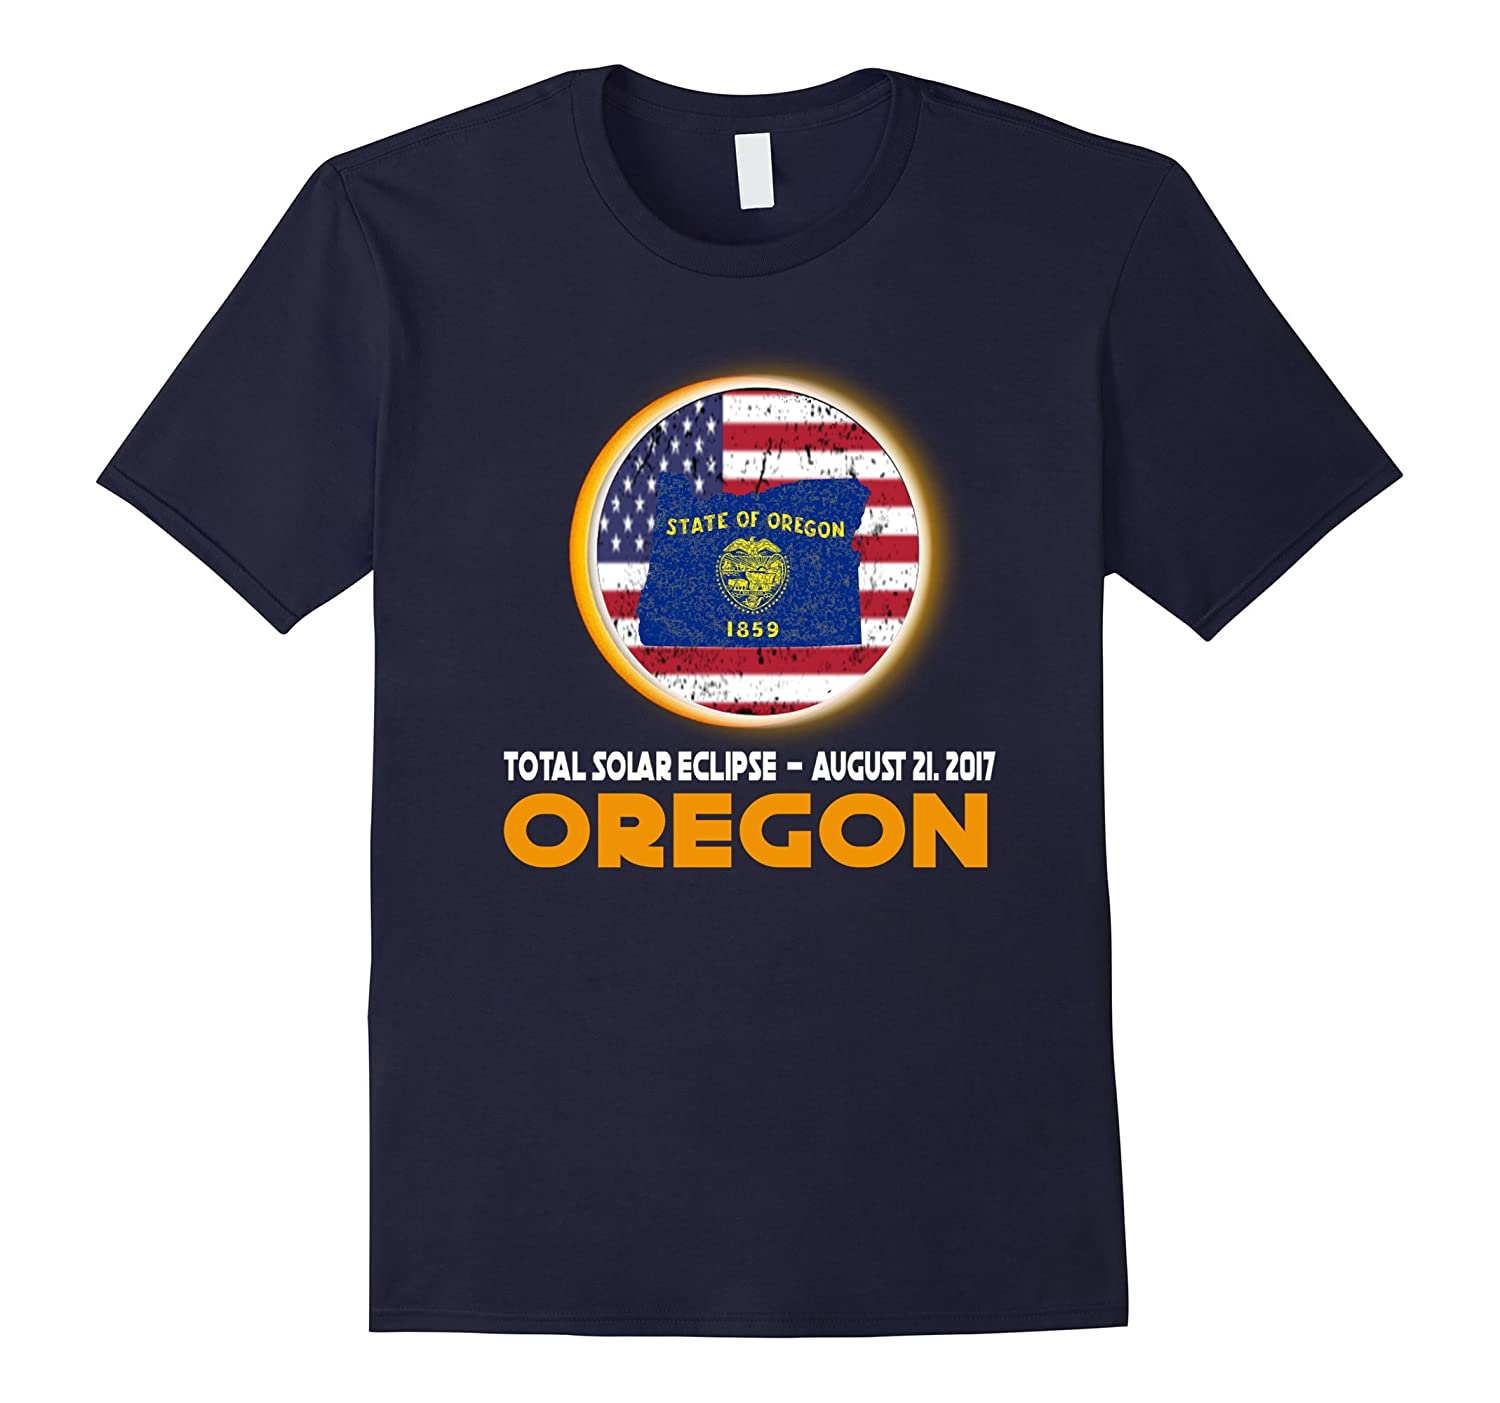 Circle total solar eclipse celestial fanatic from Oregon TS